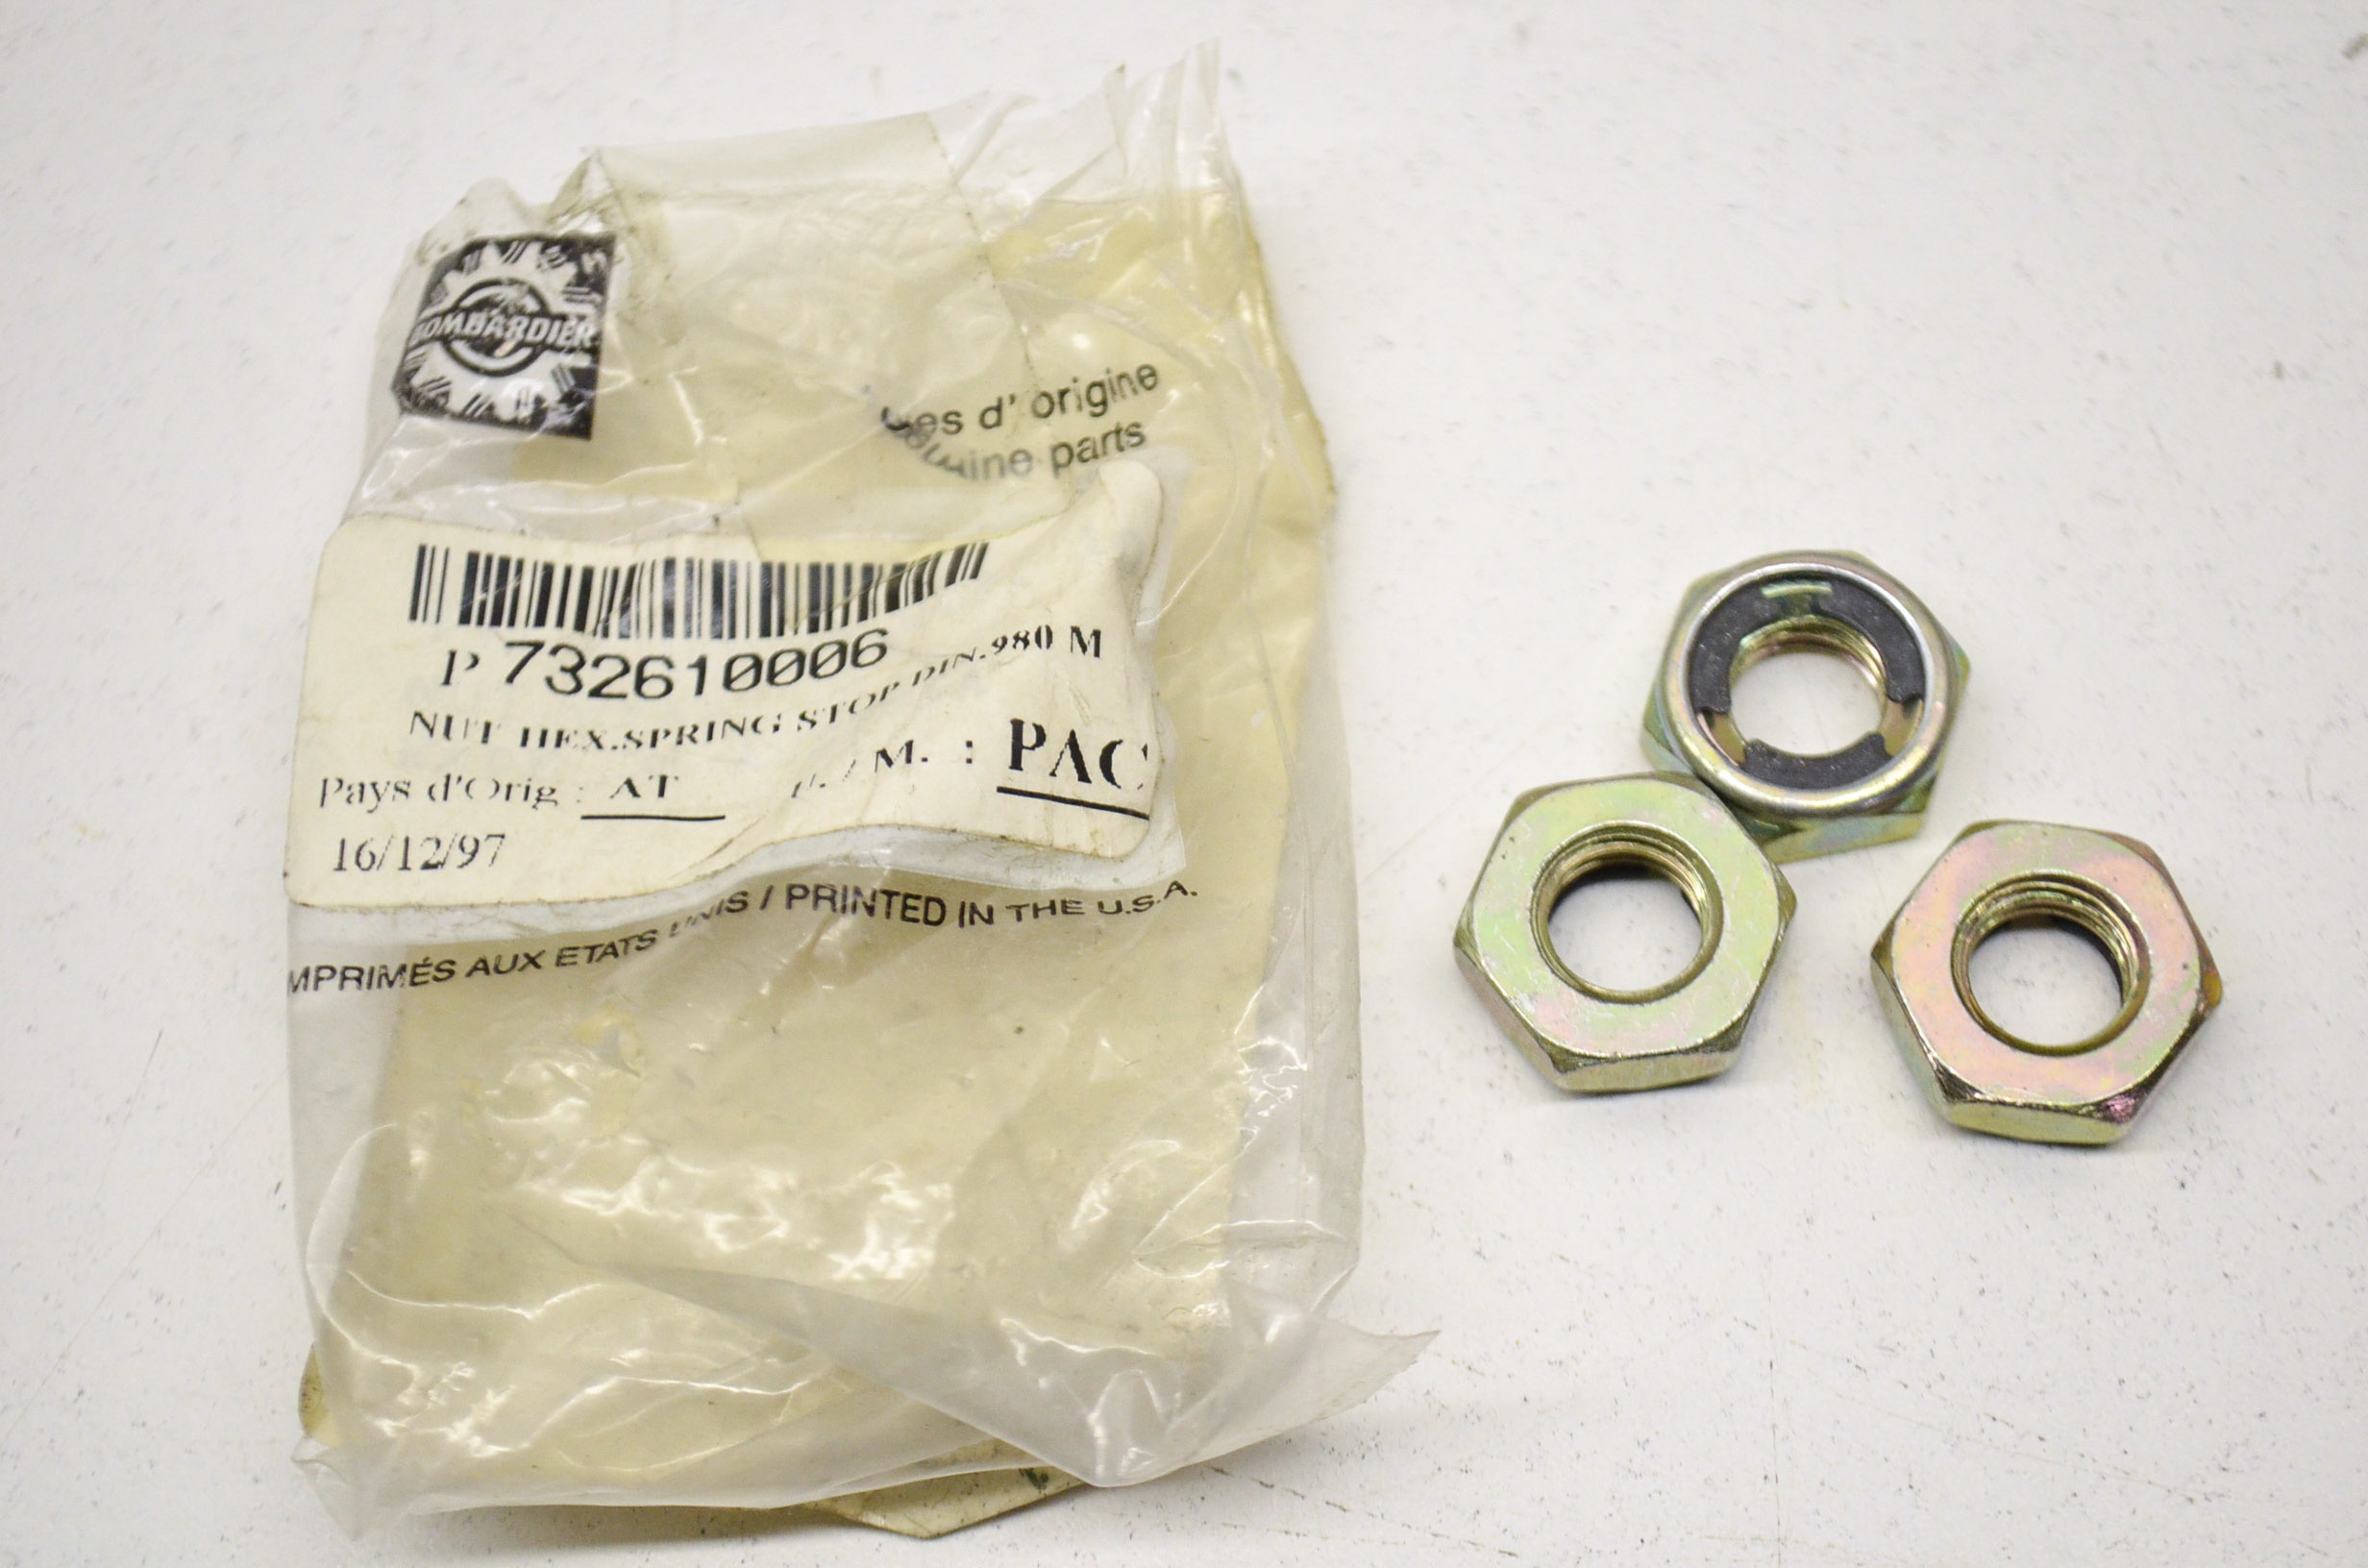 BRP, Can-Am, Sea-doo, Ski-Doo 732610006 Ski-Doo Spring Lock Nuts QTY 3 QTY 1 by BRP, Can-Am, Sea-doo, Ski-Doo